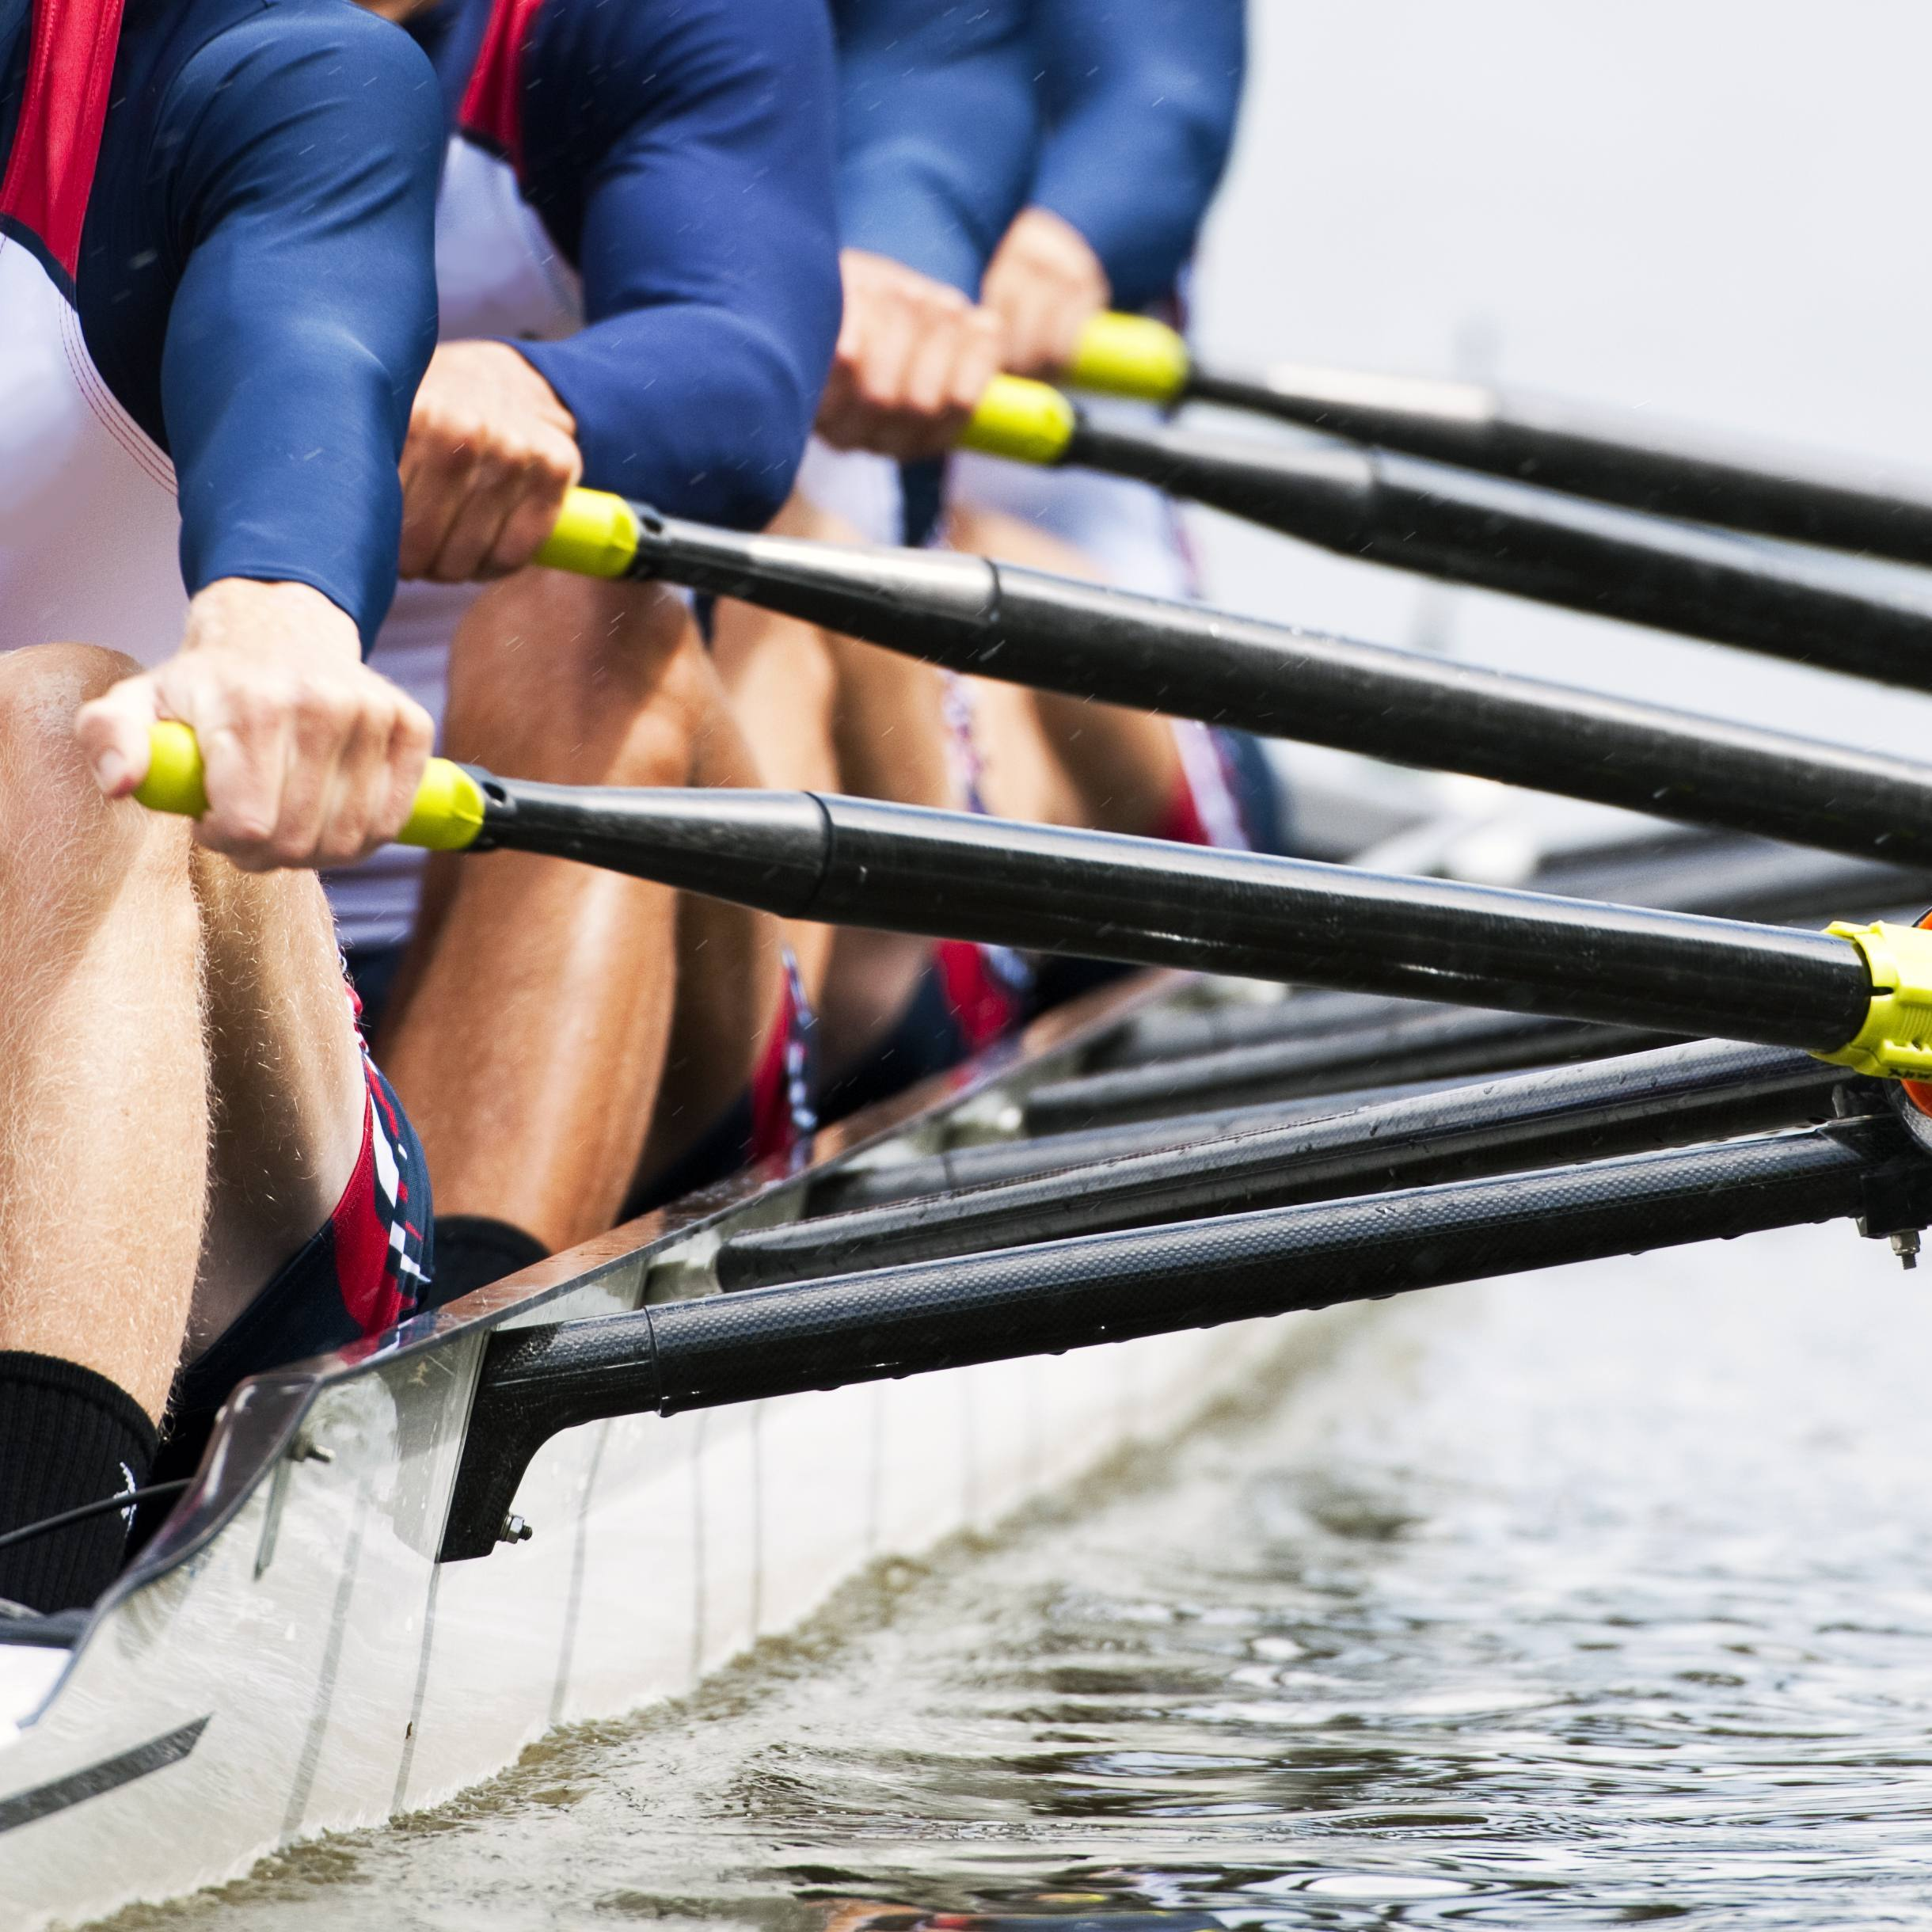 a sports rowing team in their shell or boat, paddling on the water, exercising and racing as a team